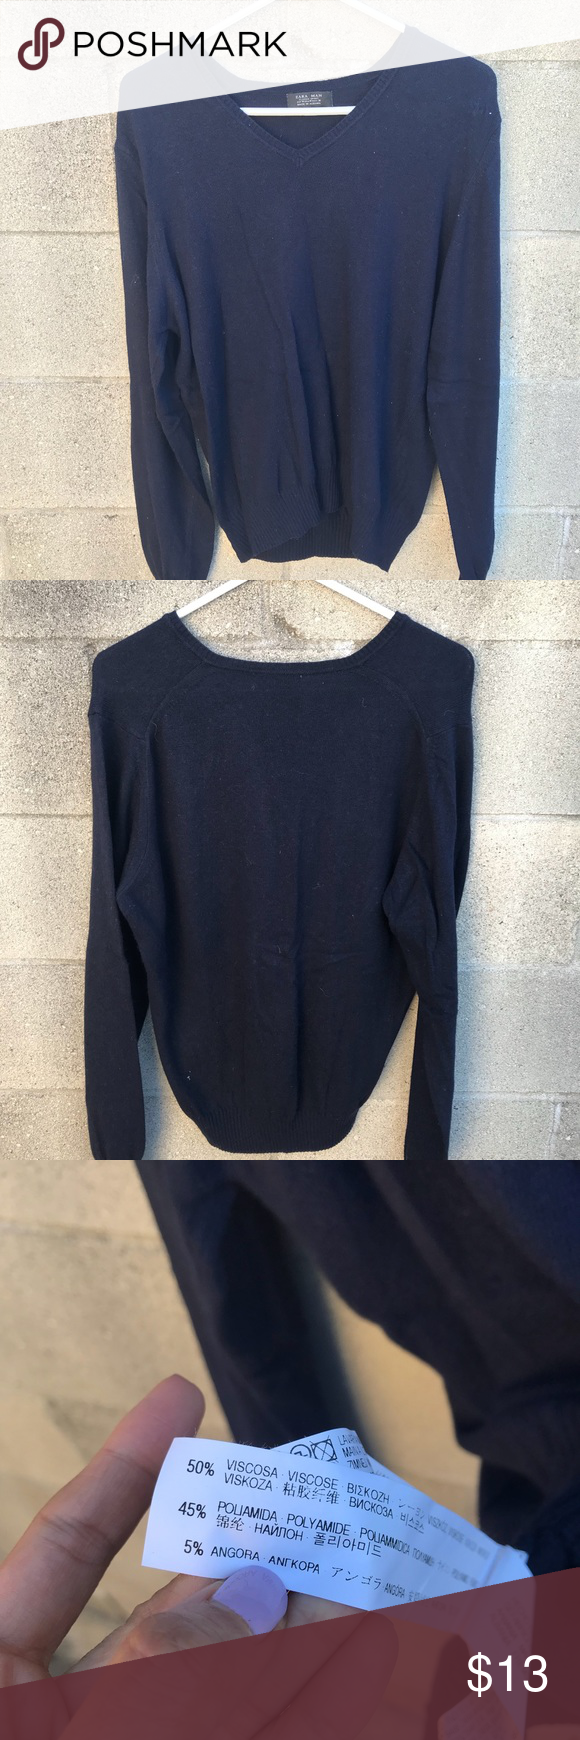 756e573c Zara Men Sweater Zara Men Sweater Size m Navy blue No stains or rips Length  24 Armpit to armpit 19 Shoulder to shoulder 16 Arm length from shoulder 31  D20 ...